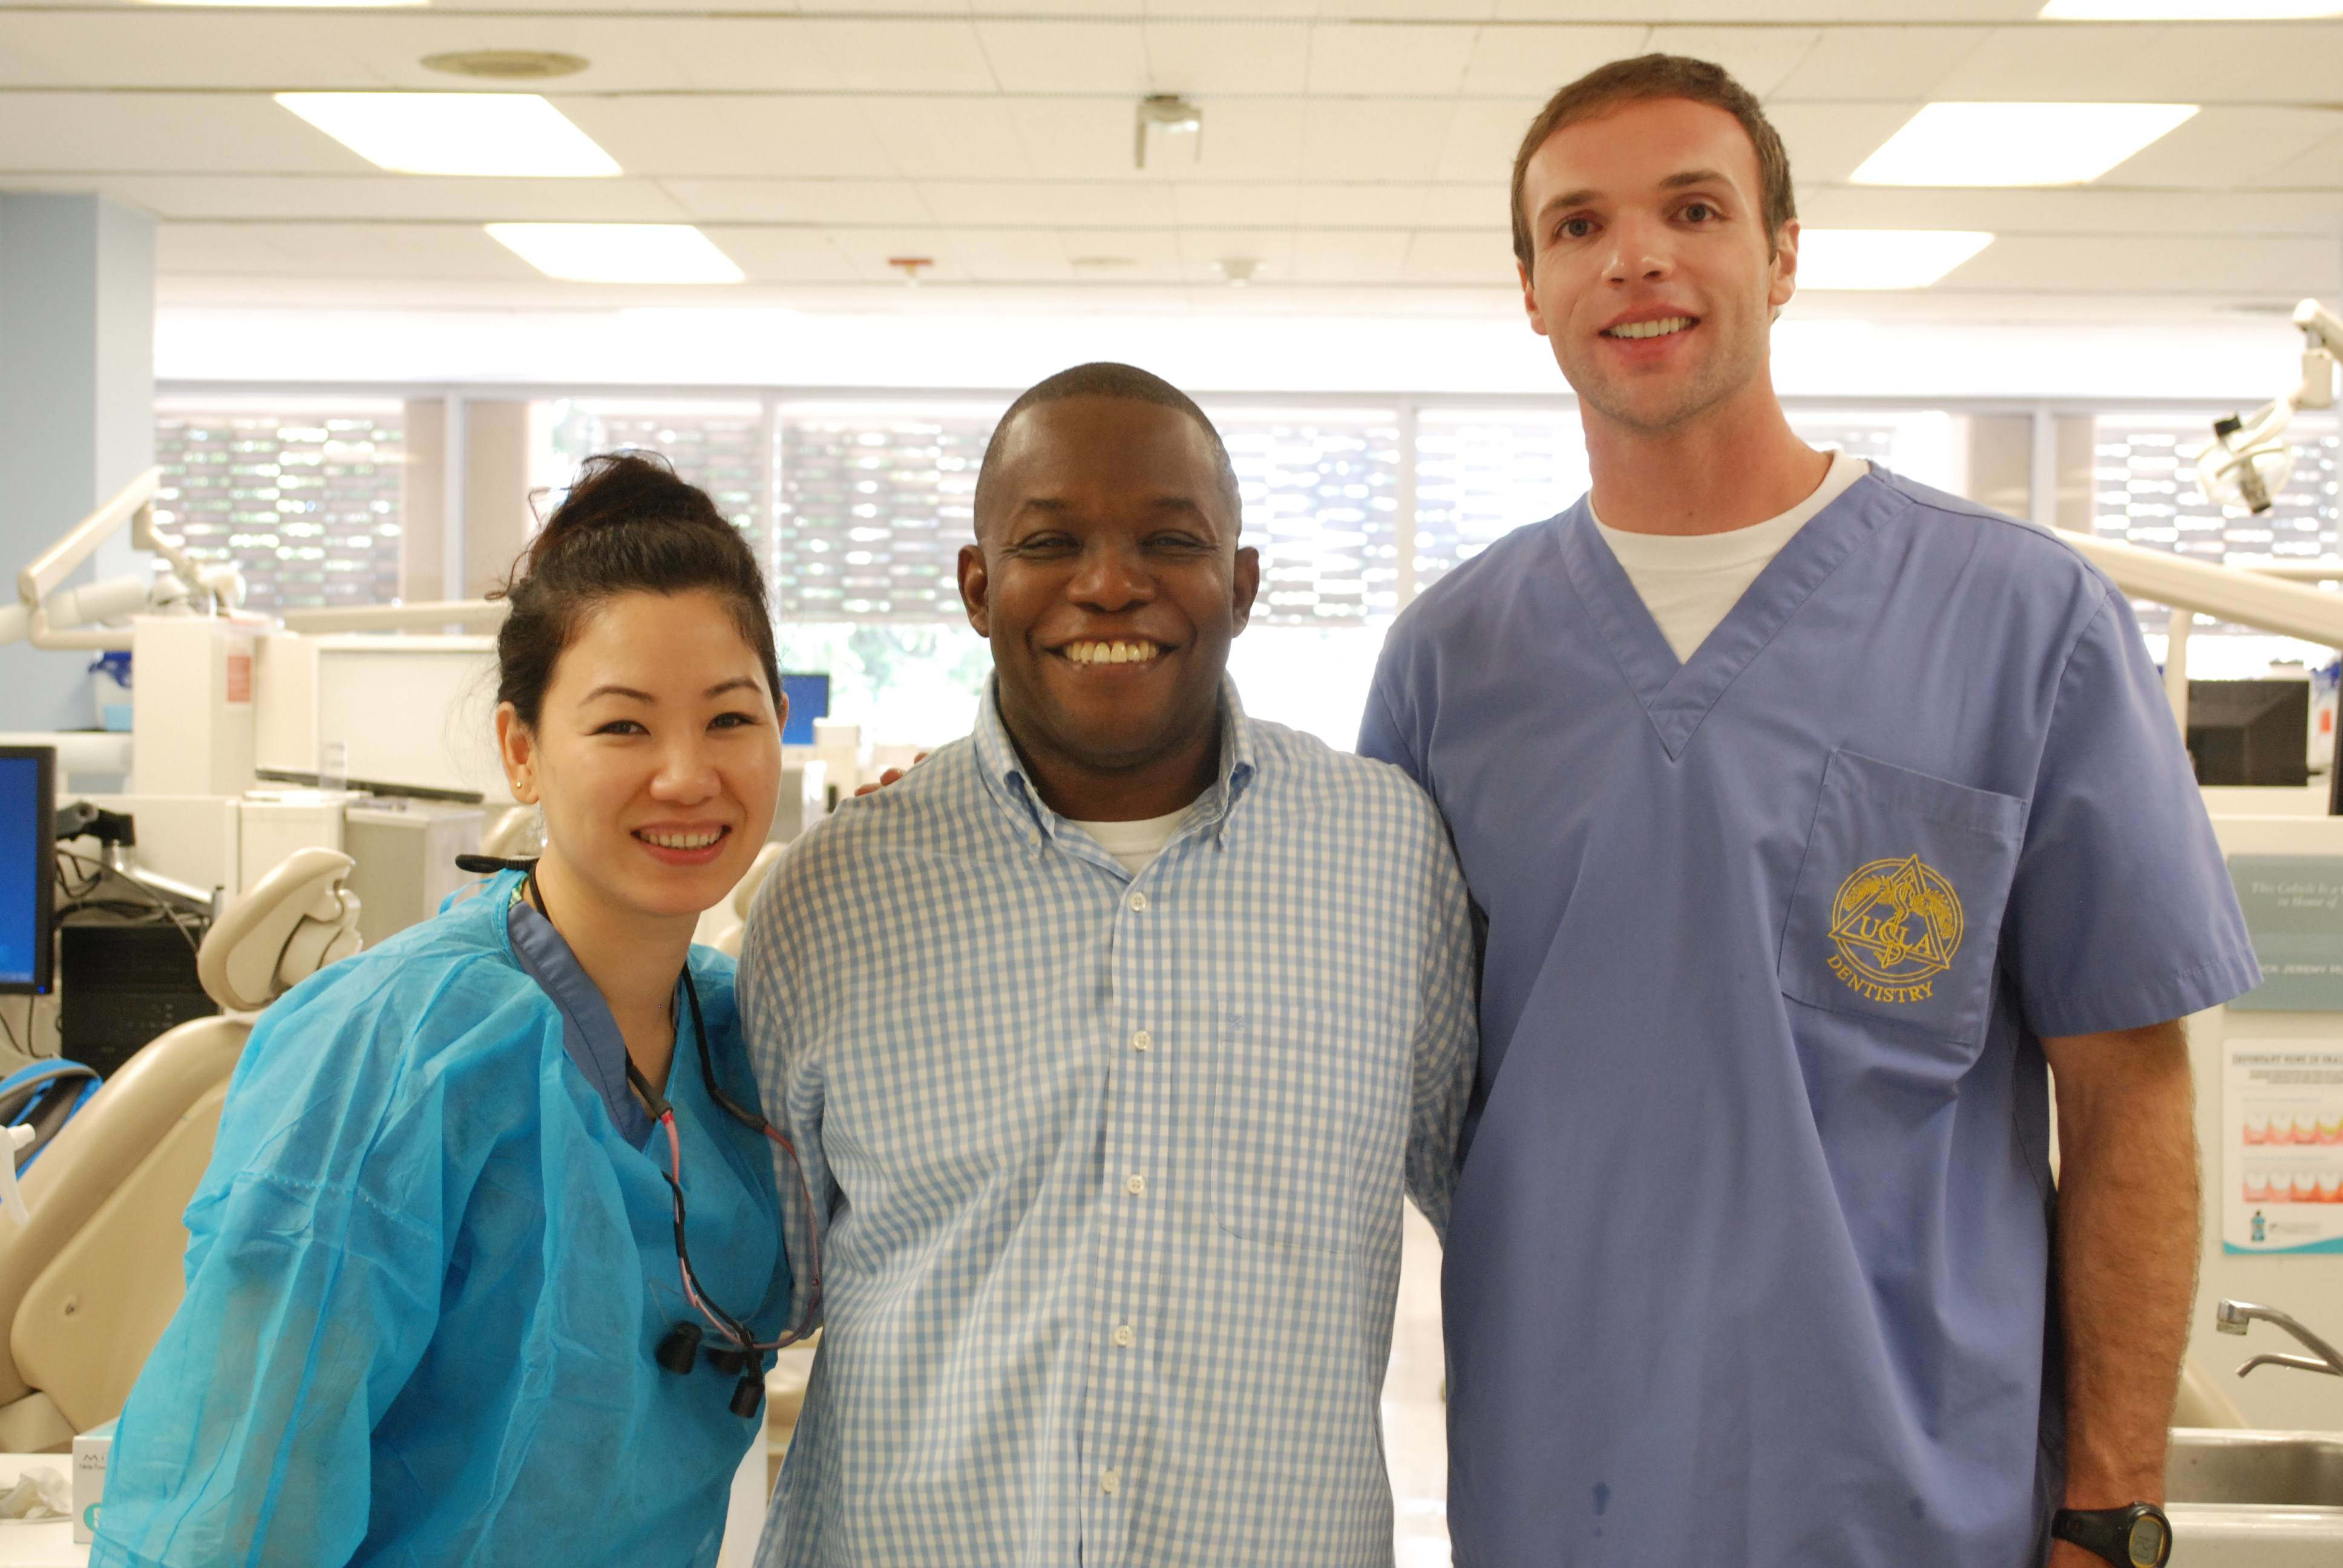 Operation Bruin Smiles patient, UCLA student veteran Rodrick F., shows off his new smile with Co-Founders Tigon Abalos and Brian Lehigh